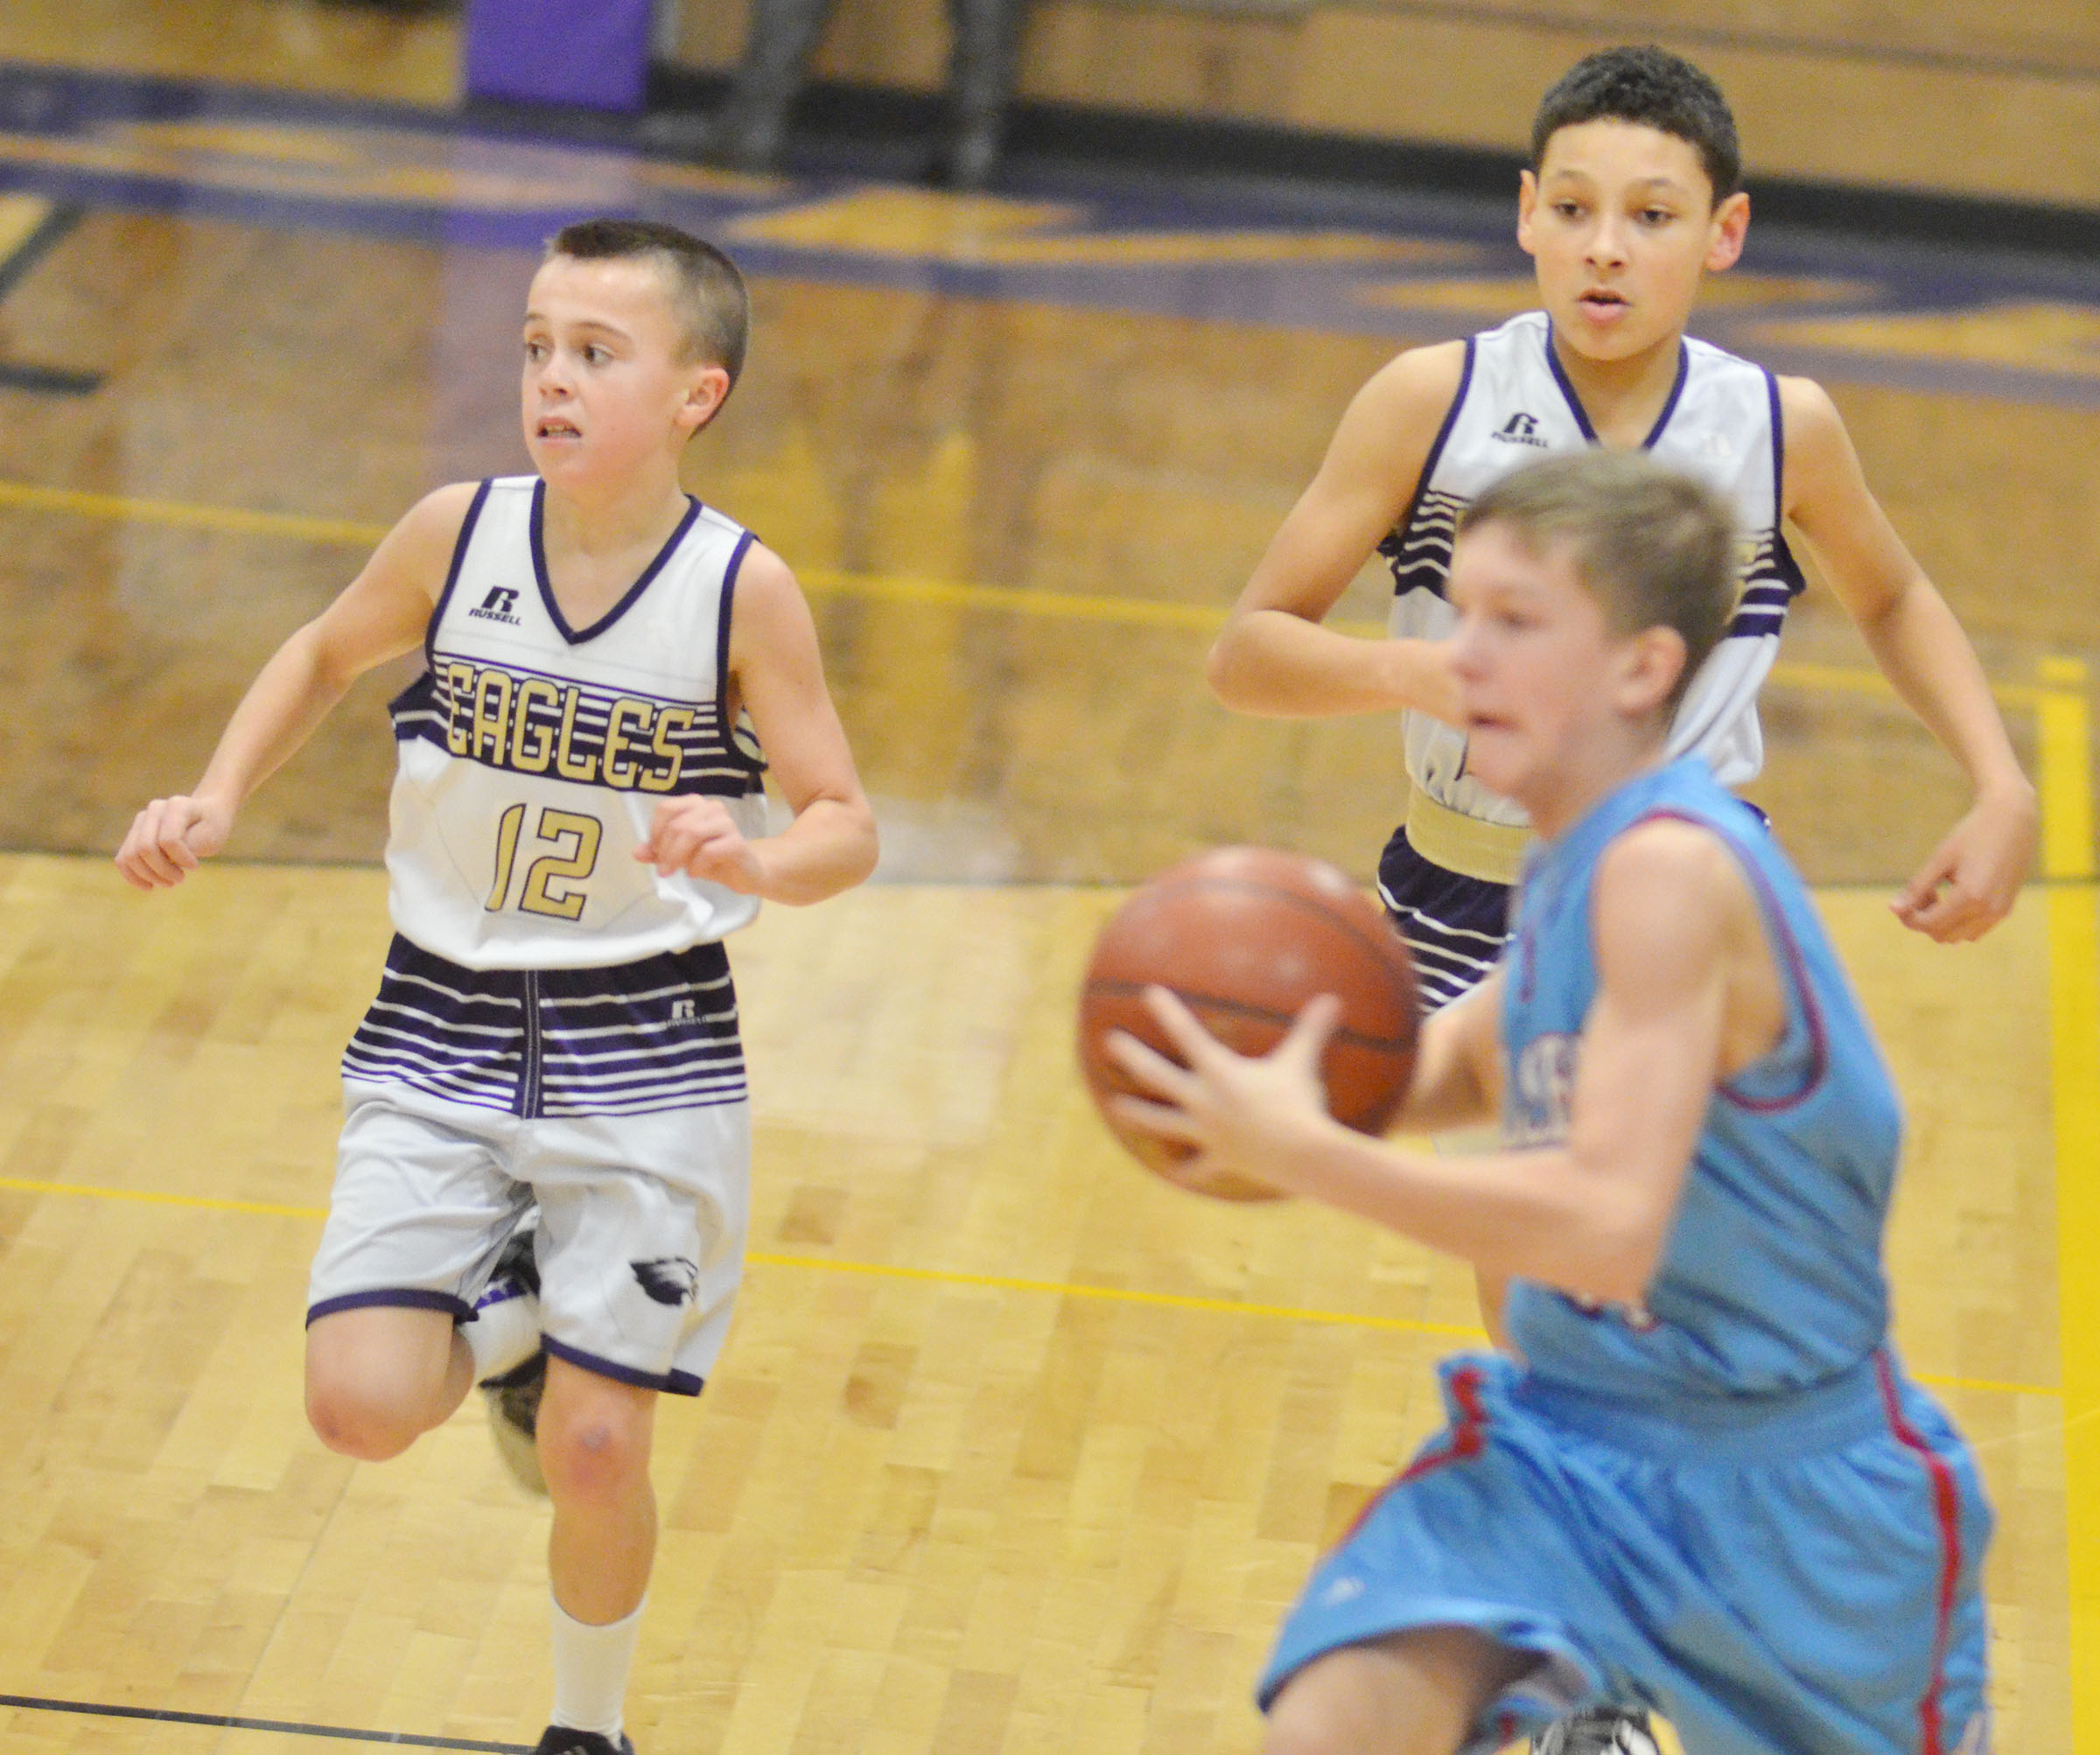 CMS sixth-graders Chase Hord, at left, and seventh-grader Brice Spaw run down the court.